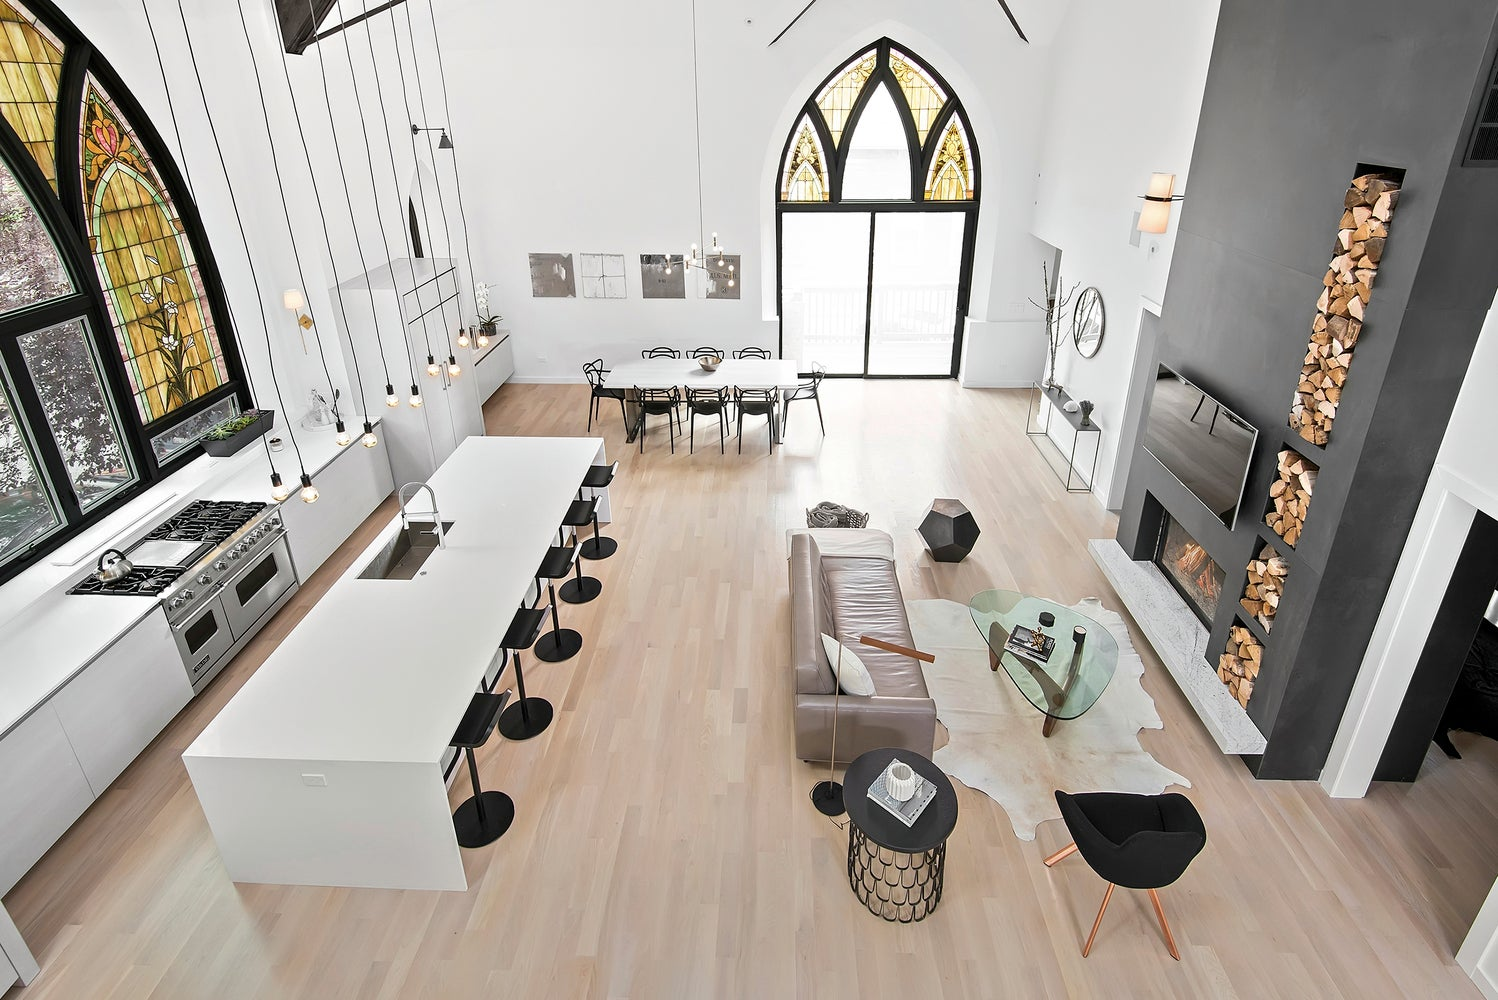 Take Me To This Converted Church Home